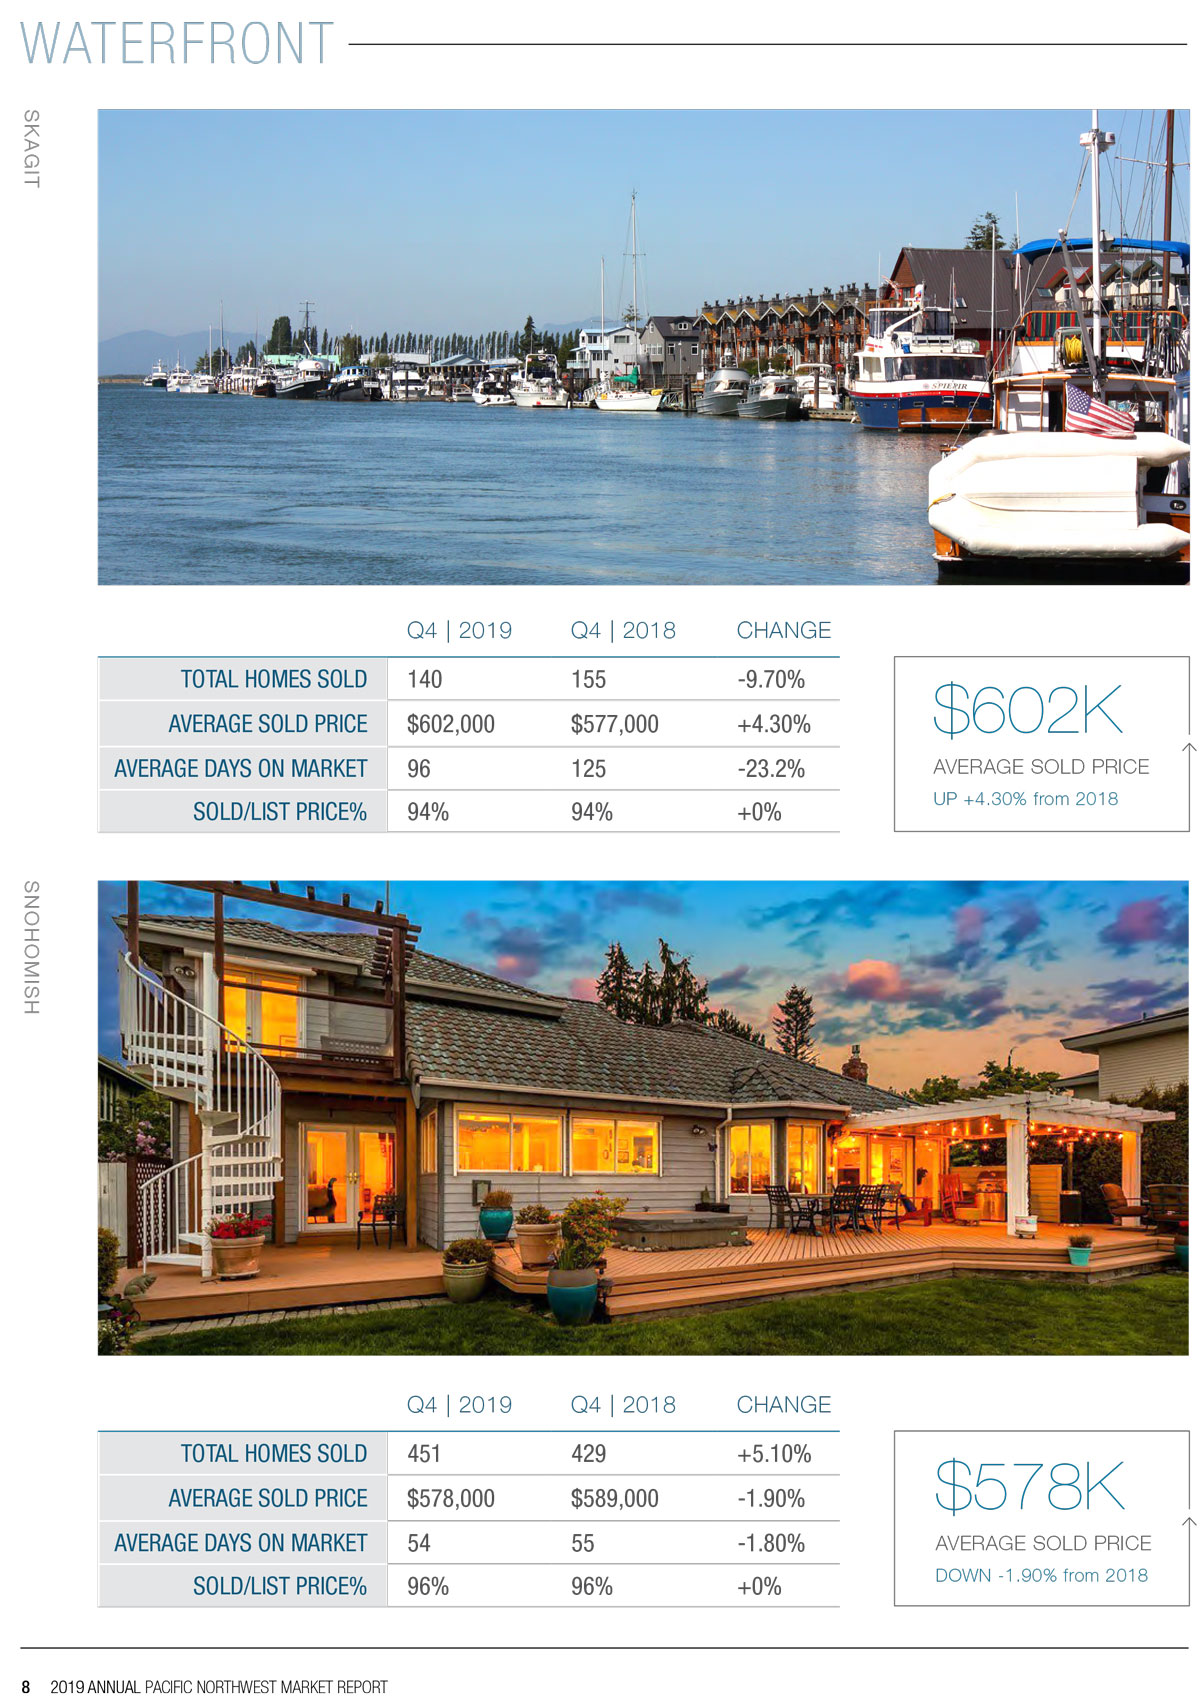 2019 Waterfront Market Report Page 4